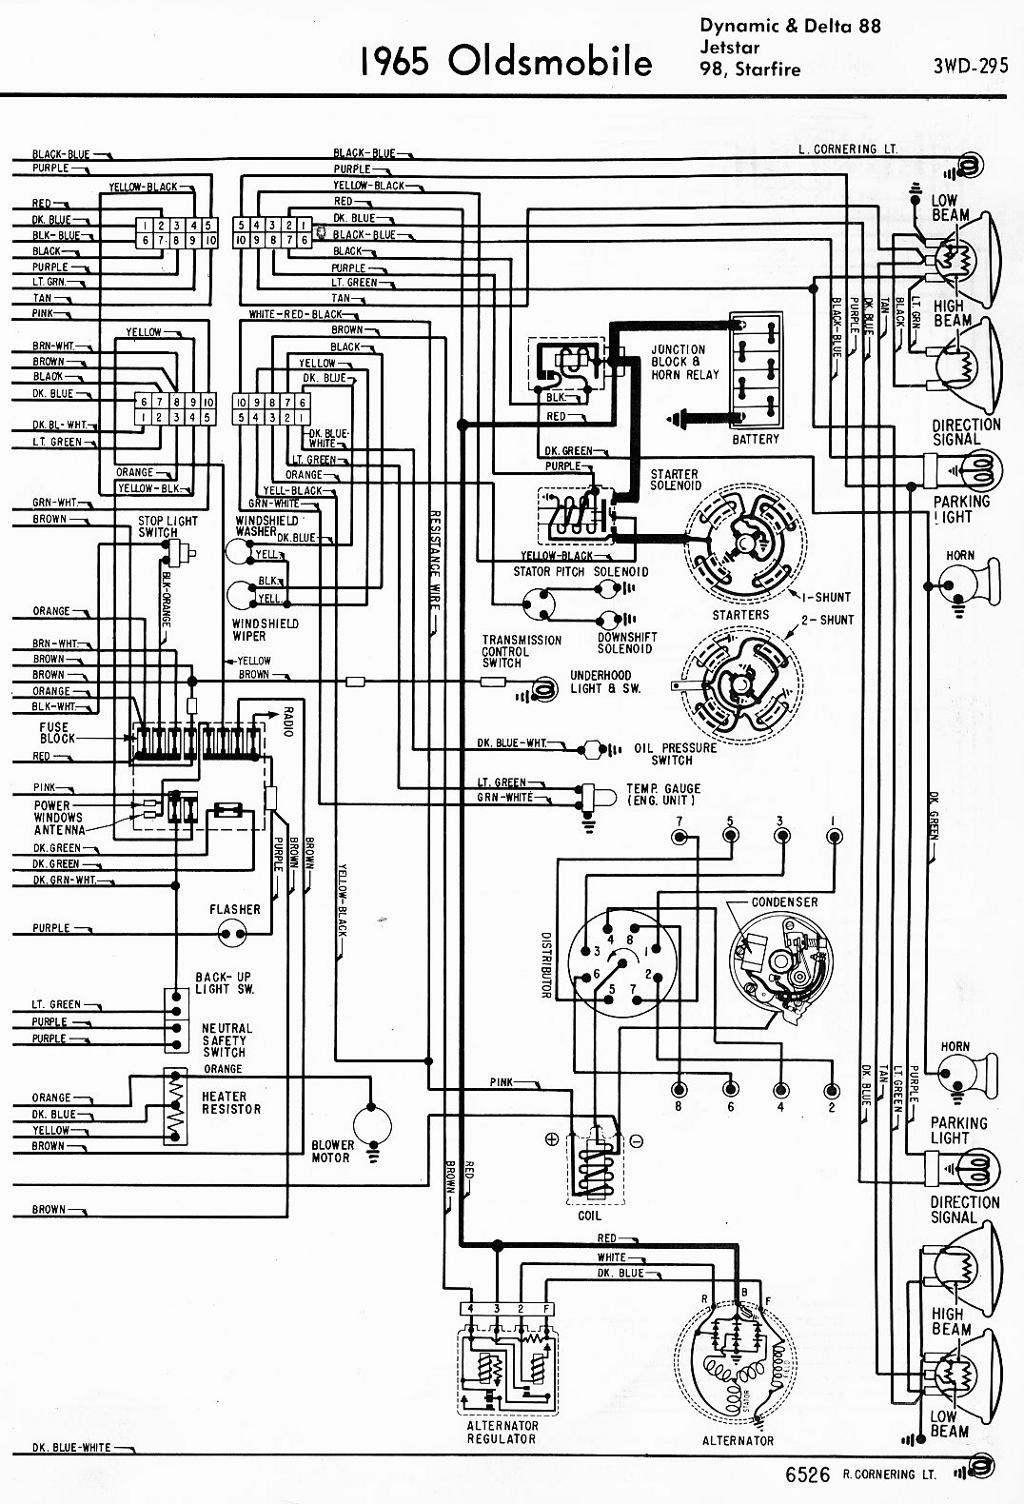 Alternator Wiring Diagram For 1986 Olds - Wiring Diagram ... on 3 wire alternator wiring diagram and resistor, alternator exciter wire diagram, 4 wire alternator diagram, painless wiring diagram, ford 3 wire alternator diagram, gm internal regulator wiring diagram, gm single wire alternator diagram, alternator block diagram, 3 wire 140 amp alternator wiring diagram, 3 wire ignition switch diagram, 3 wire alternator to 1 wire, chevy one wire alternator diagram, three wire alternator diagram, gm externally regulated alternator diagram, 2 wire alternator diagram, ballast resistor wiring diagram, basic tractor wiring diagram, chevy 3 wire alternator diagram, alternator electrical diagram, ford 1 wire alternator diagram,